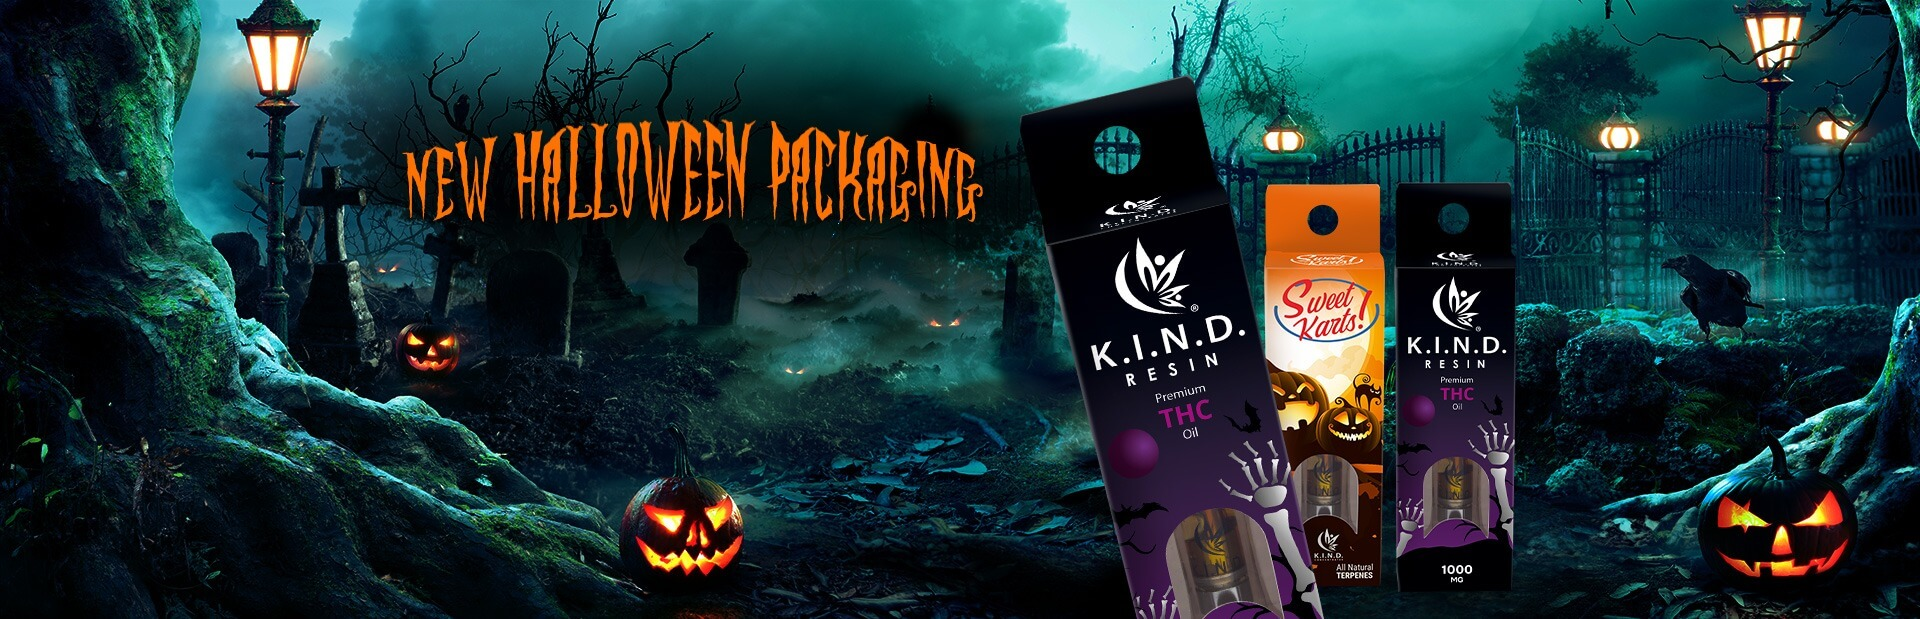 New Halloween K.I.N.D. Packaging